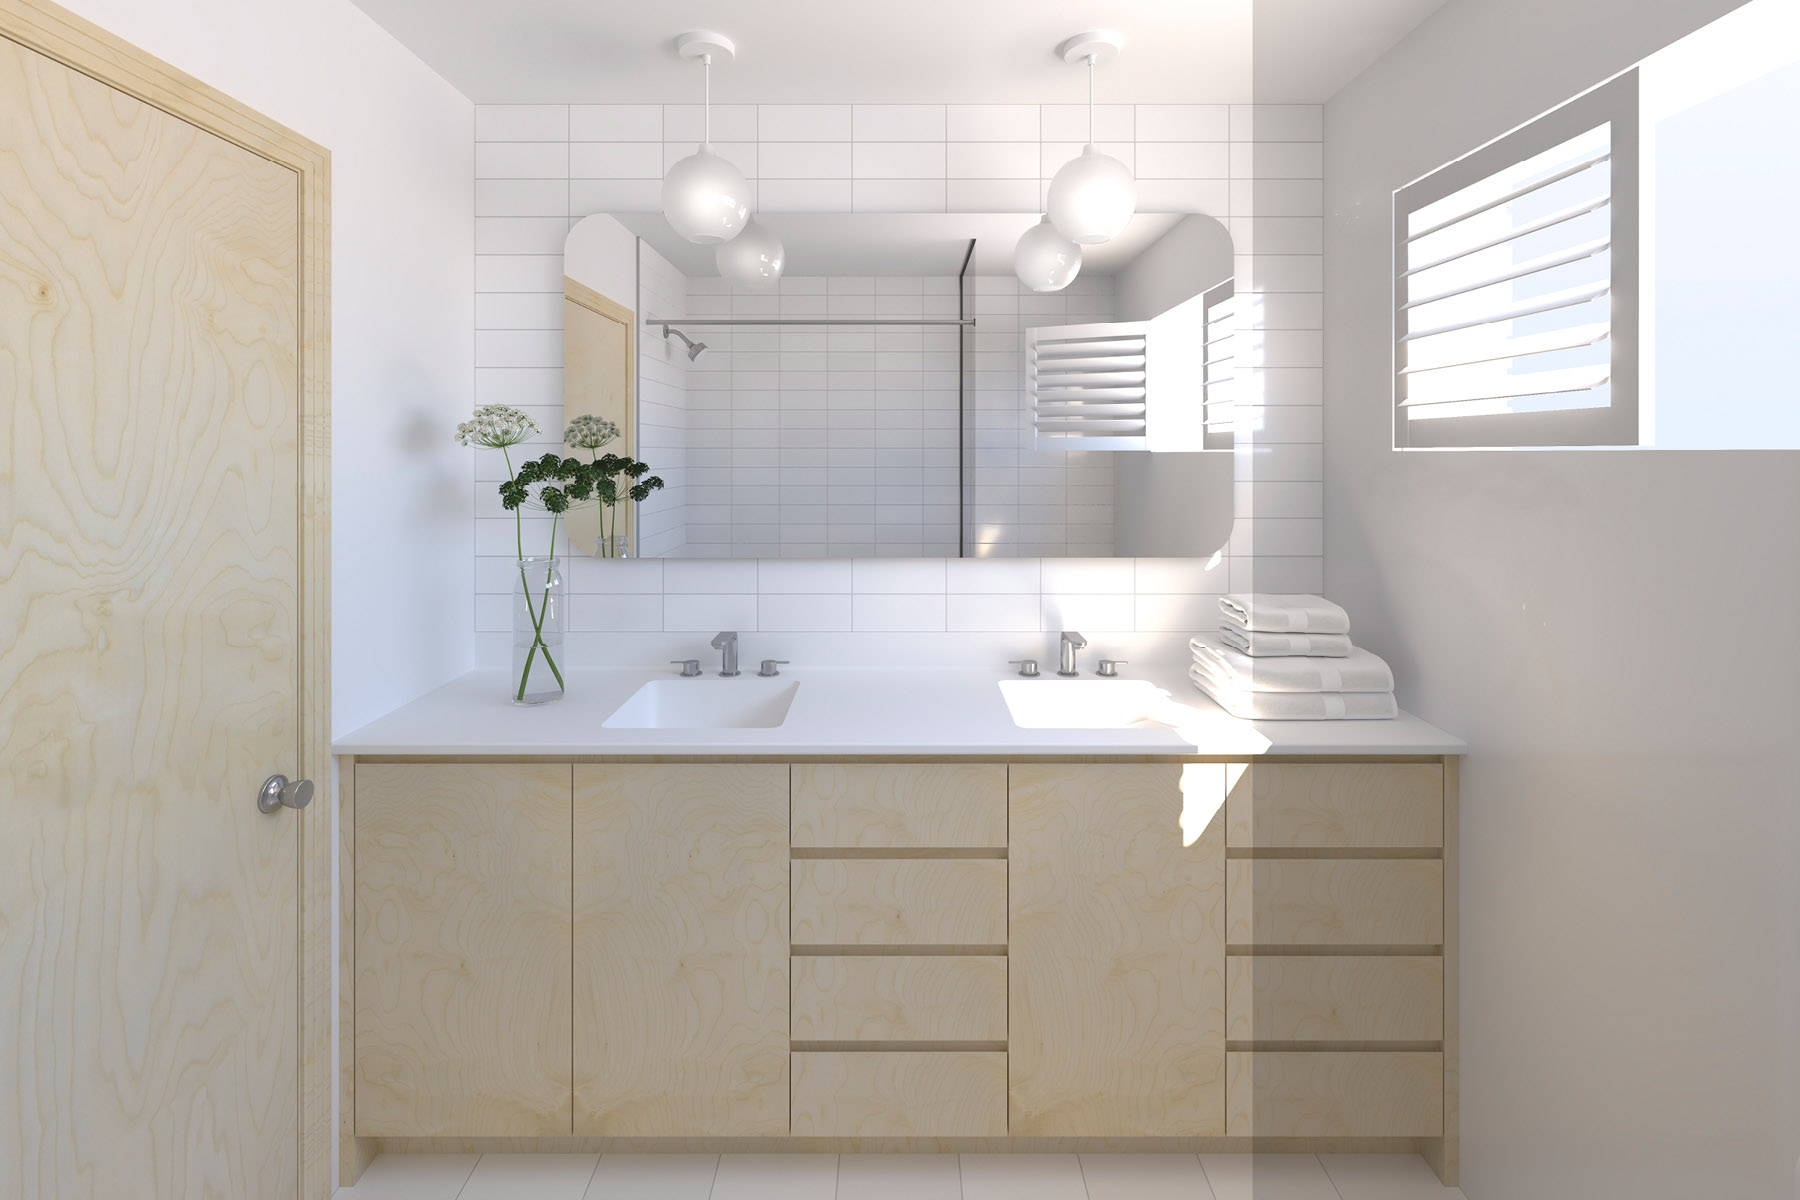 Visualisation of the proposed vanity